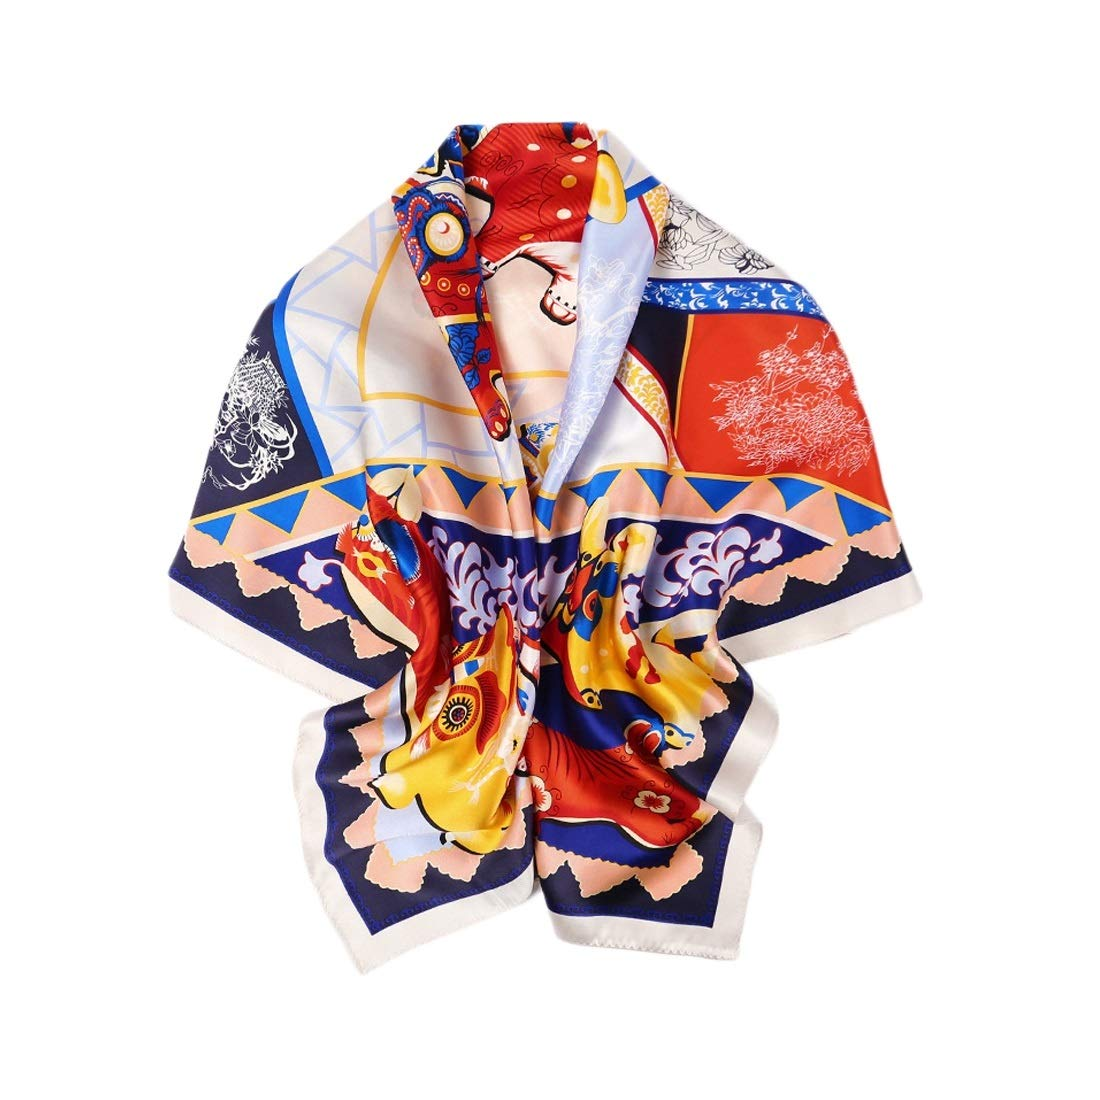 1 CEFULTY Women Silk Square Scarf Satin Silky Soft Scarf Office Air Conditioner Shawl Beach Towel (color   4, Size   105x105CM)